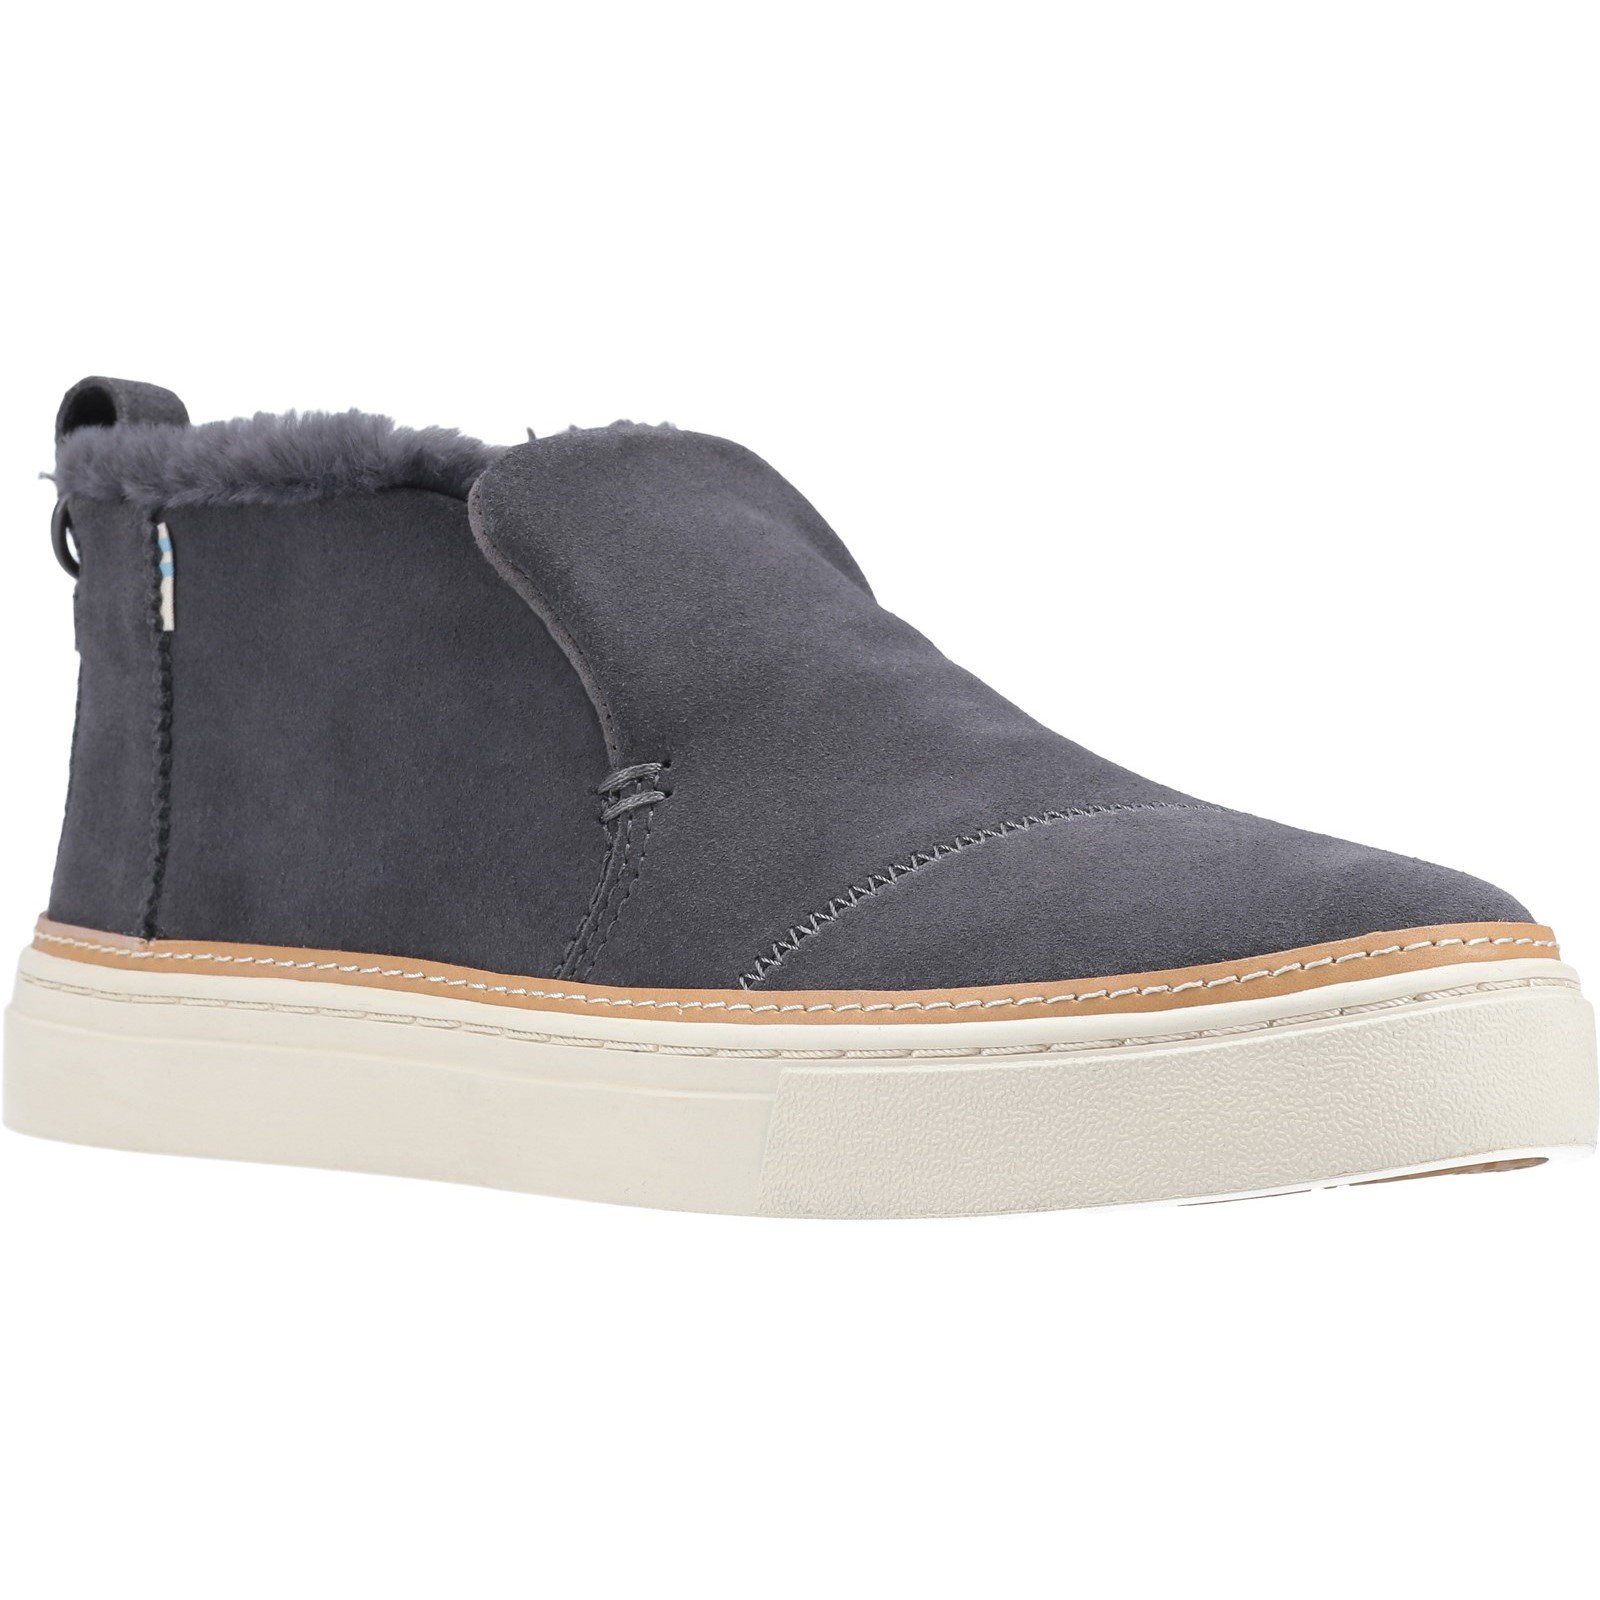 Hush Puppies Men's Paxton Chelsea Boot Various Colours 32882 - Gry Suede/Faux Shearling 6